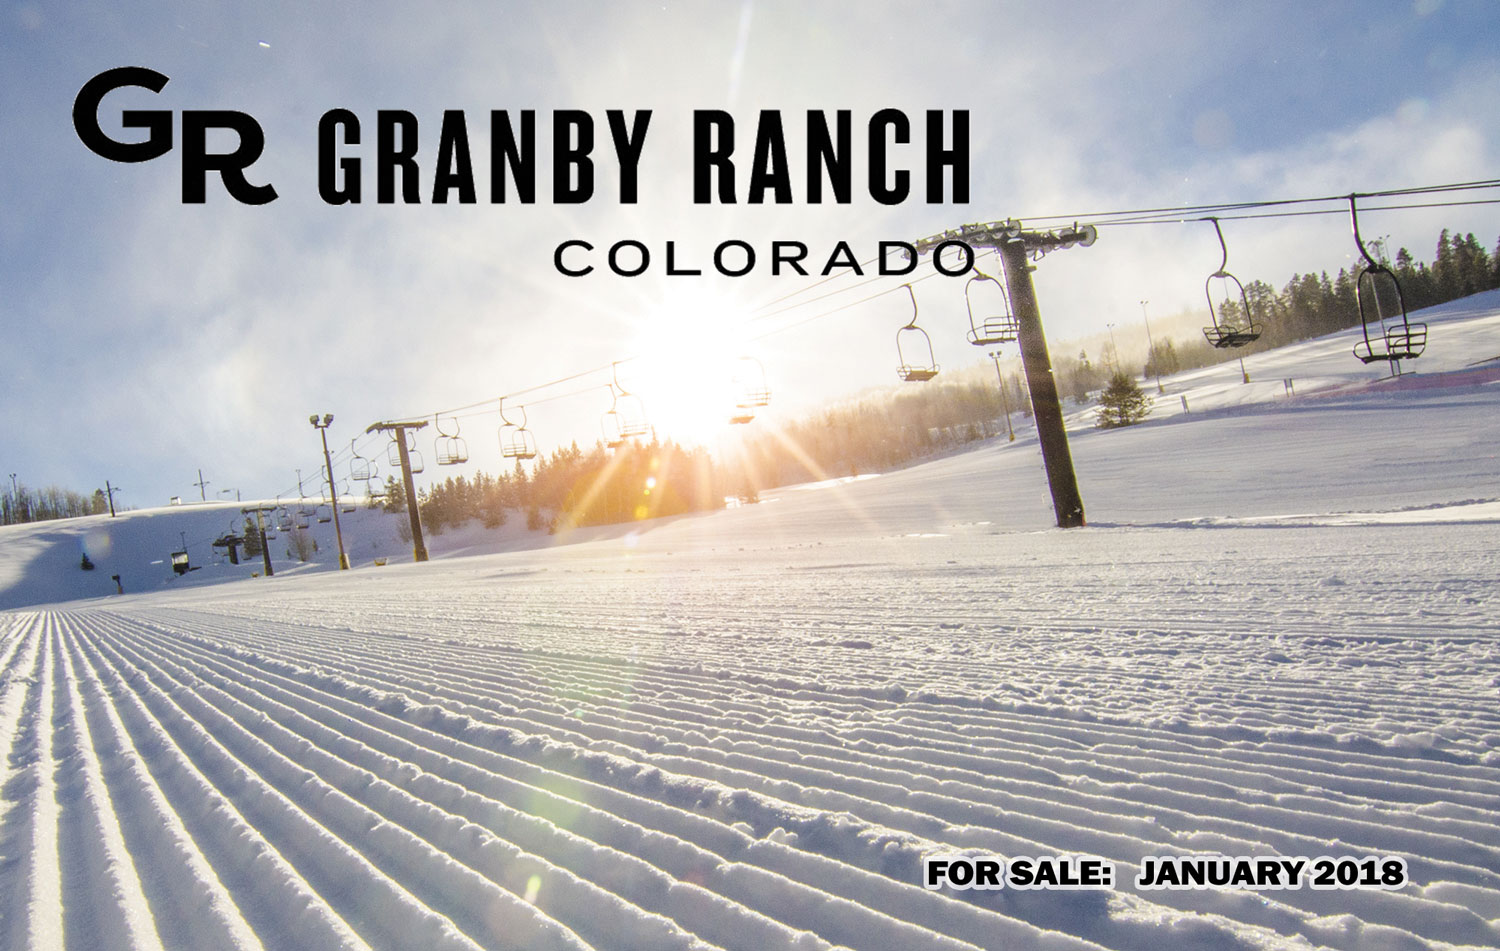 Family-oriented Granby Ranch goes on the market January 2018.